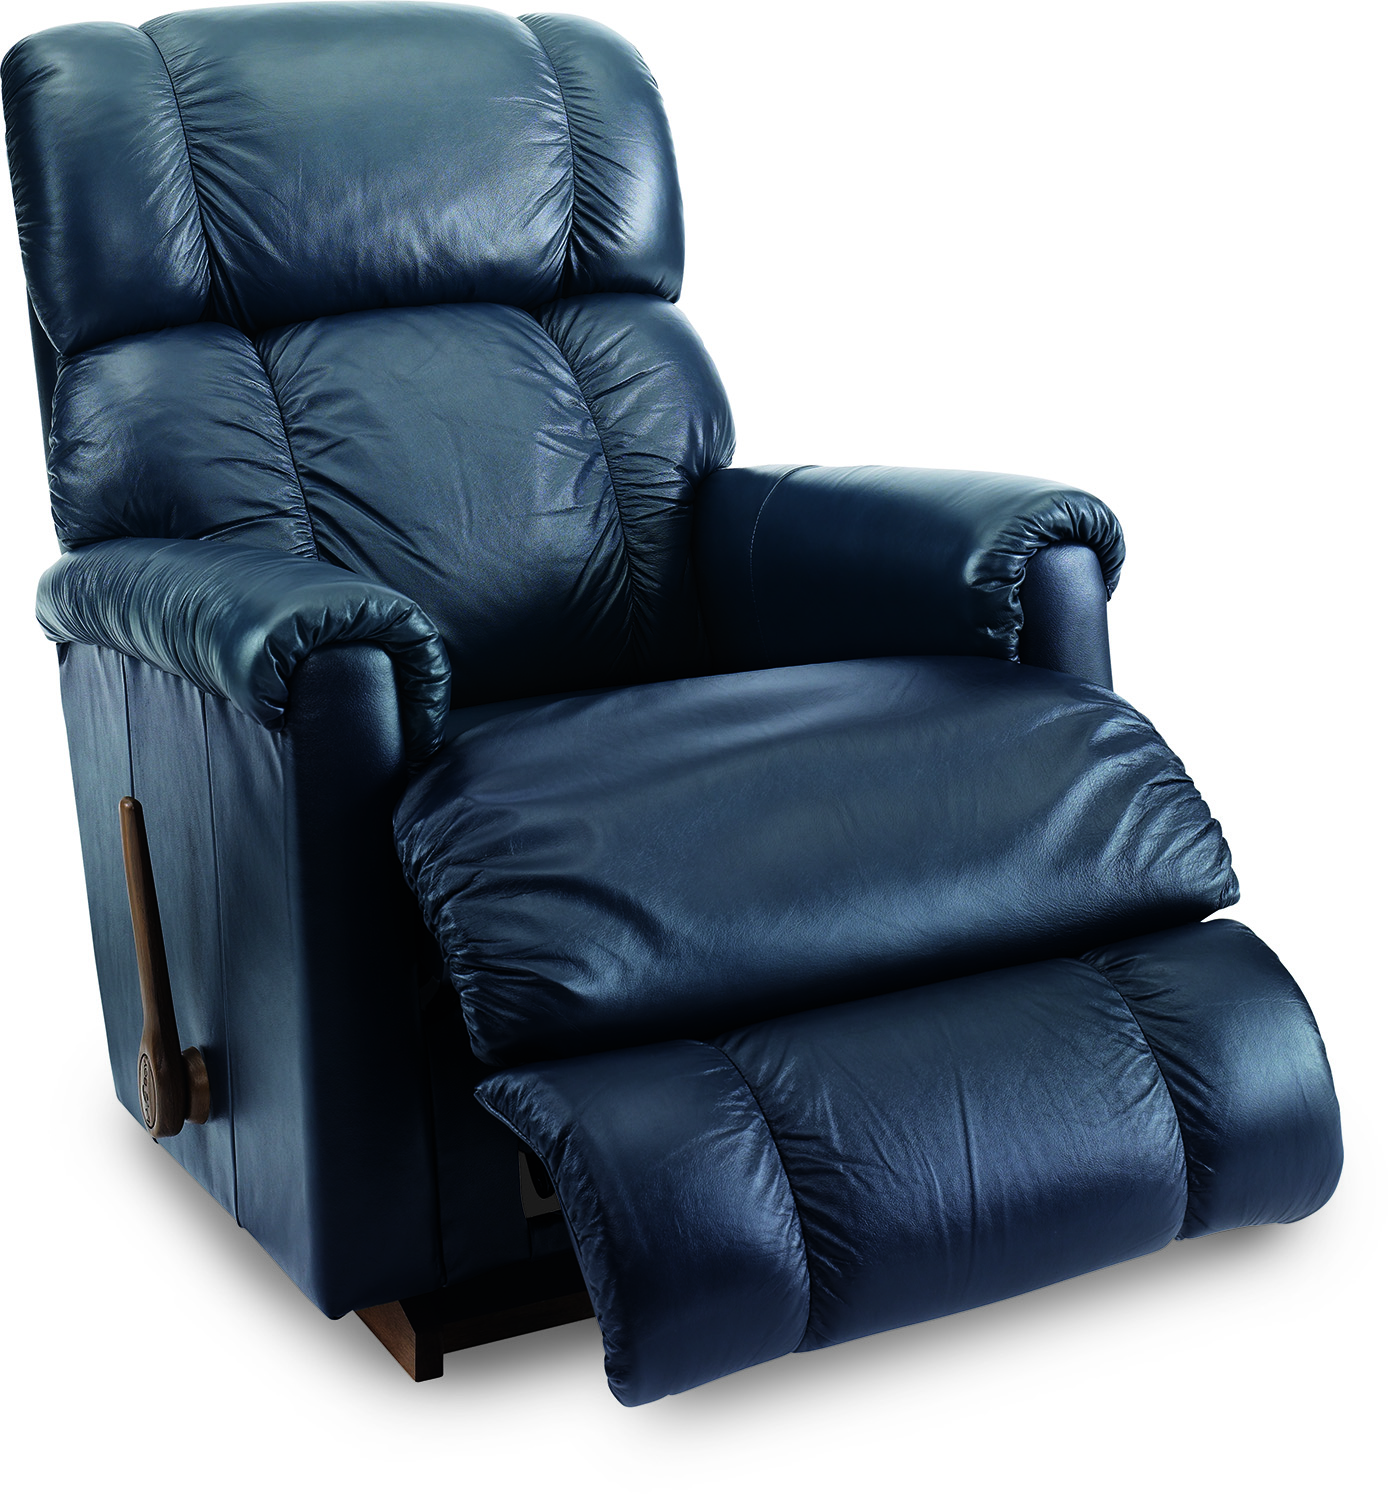 Pinnacle Rocker Recliner Town Amp Country Furniture